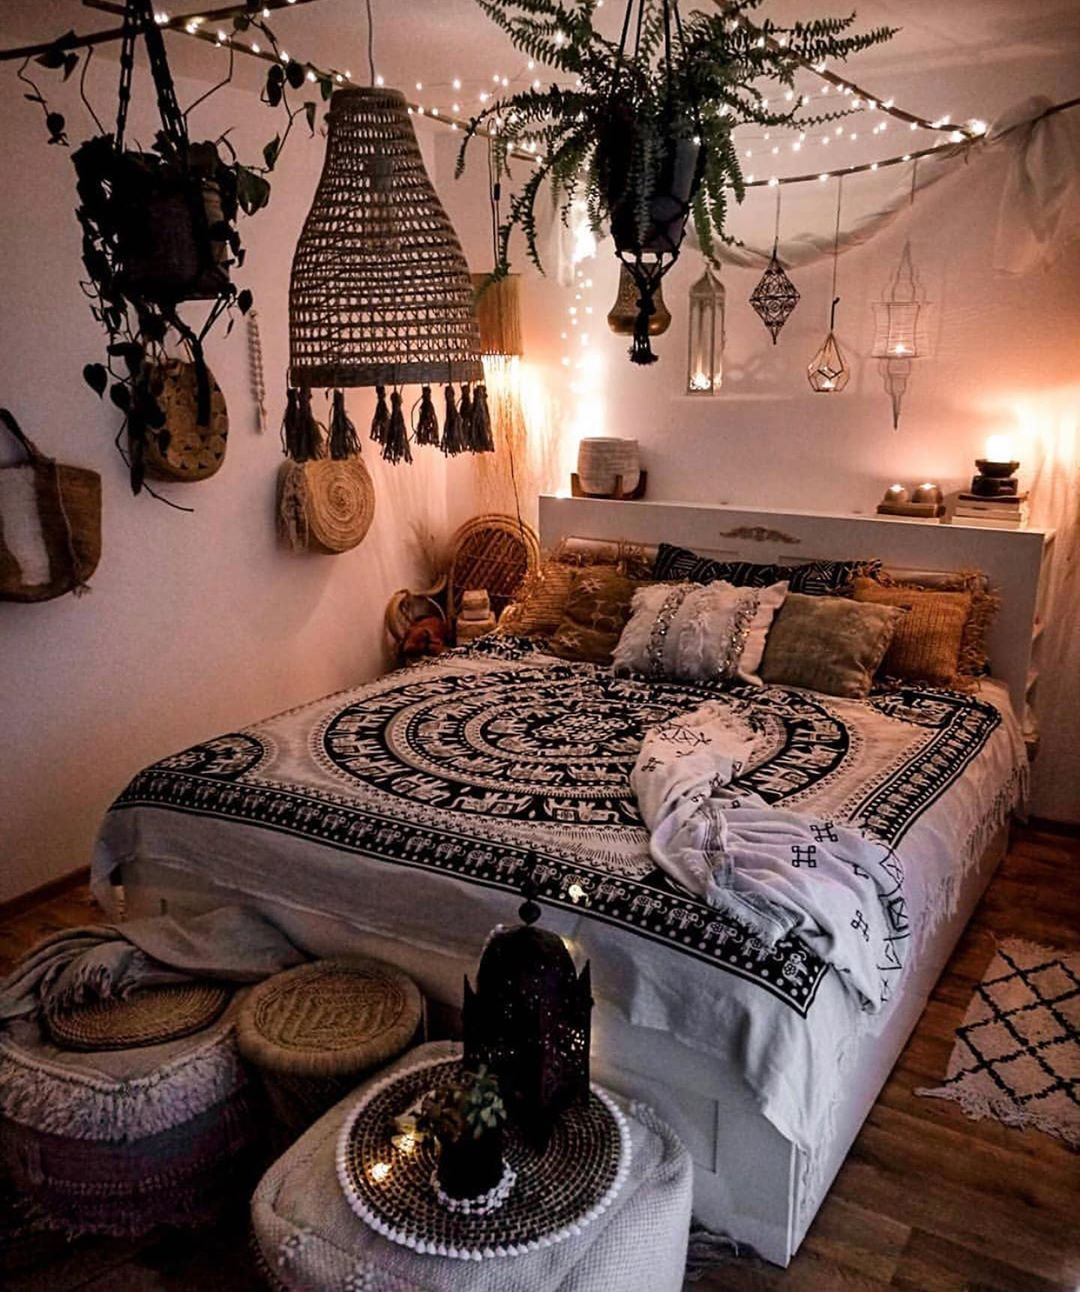 "apartment inspiration & decor on Instagram: ""that boho interior�️�� . . . . . . . #nyc #nycapartment #dorm #dormdecor #apartmentdecor #apartmentliving #nycapartments #dormroom…"""